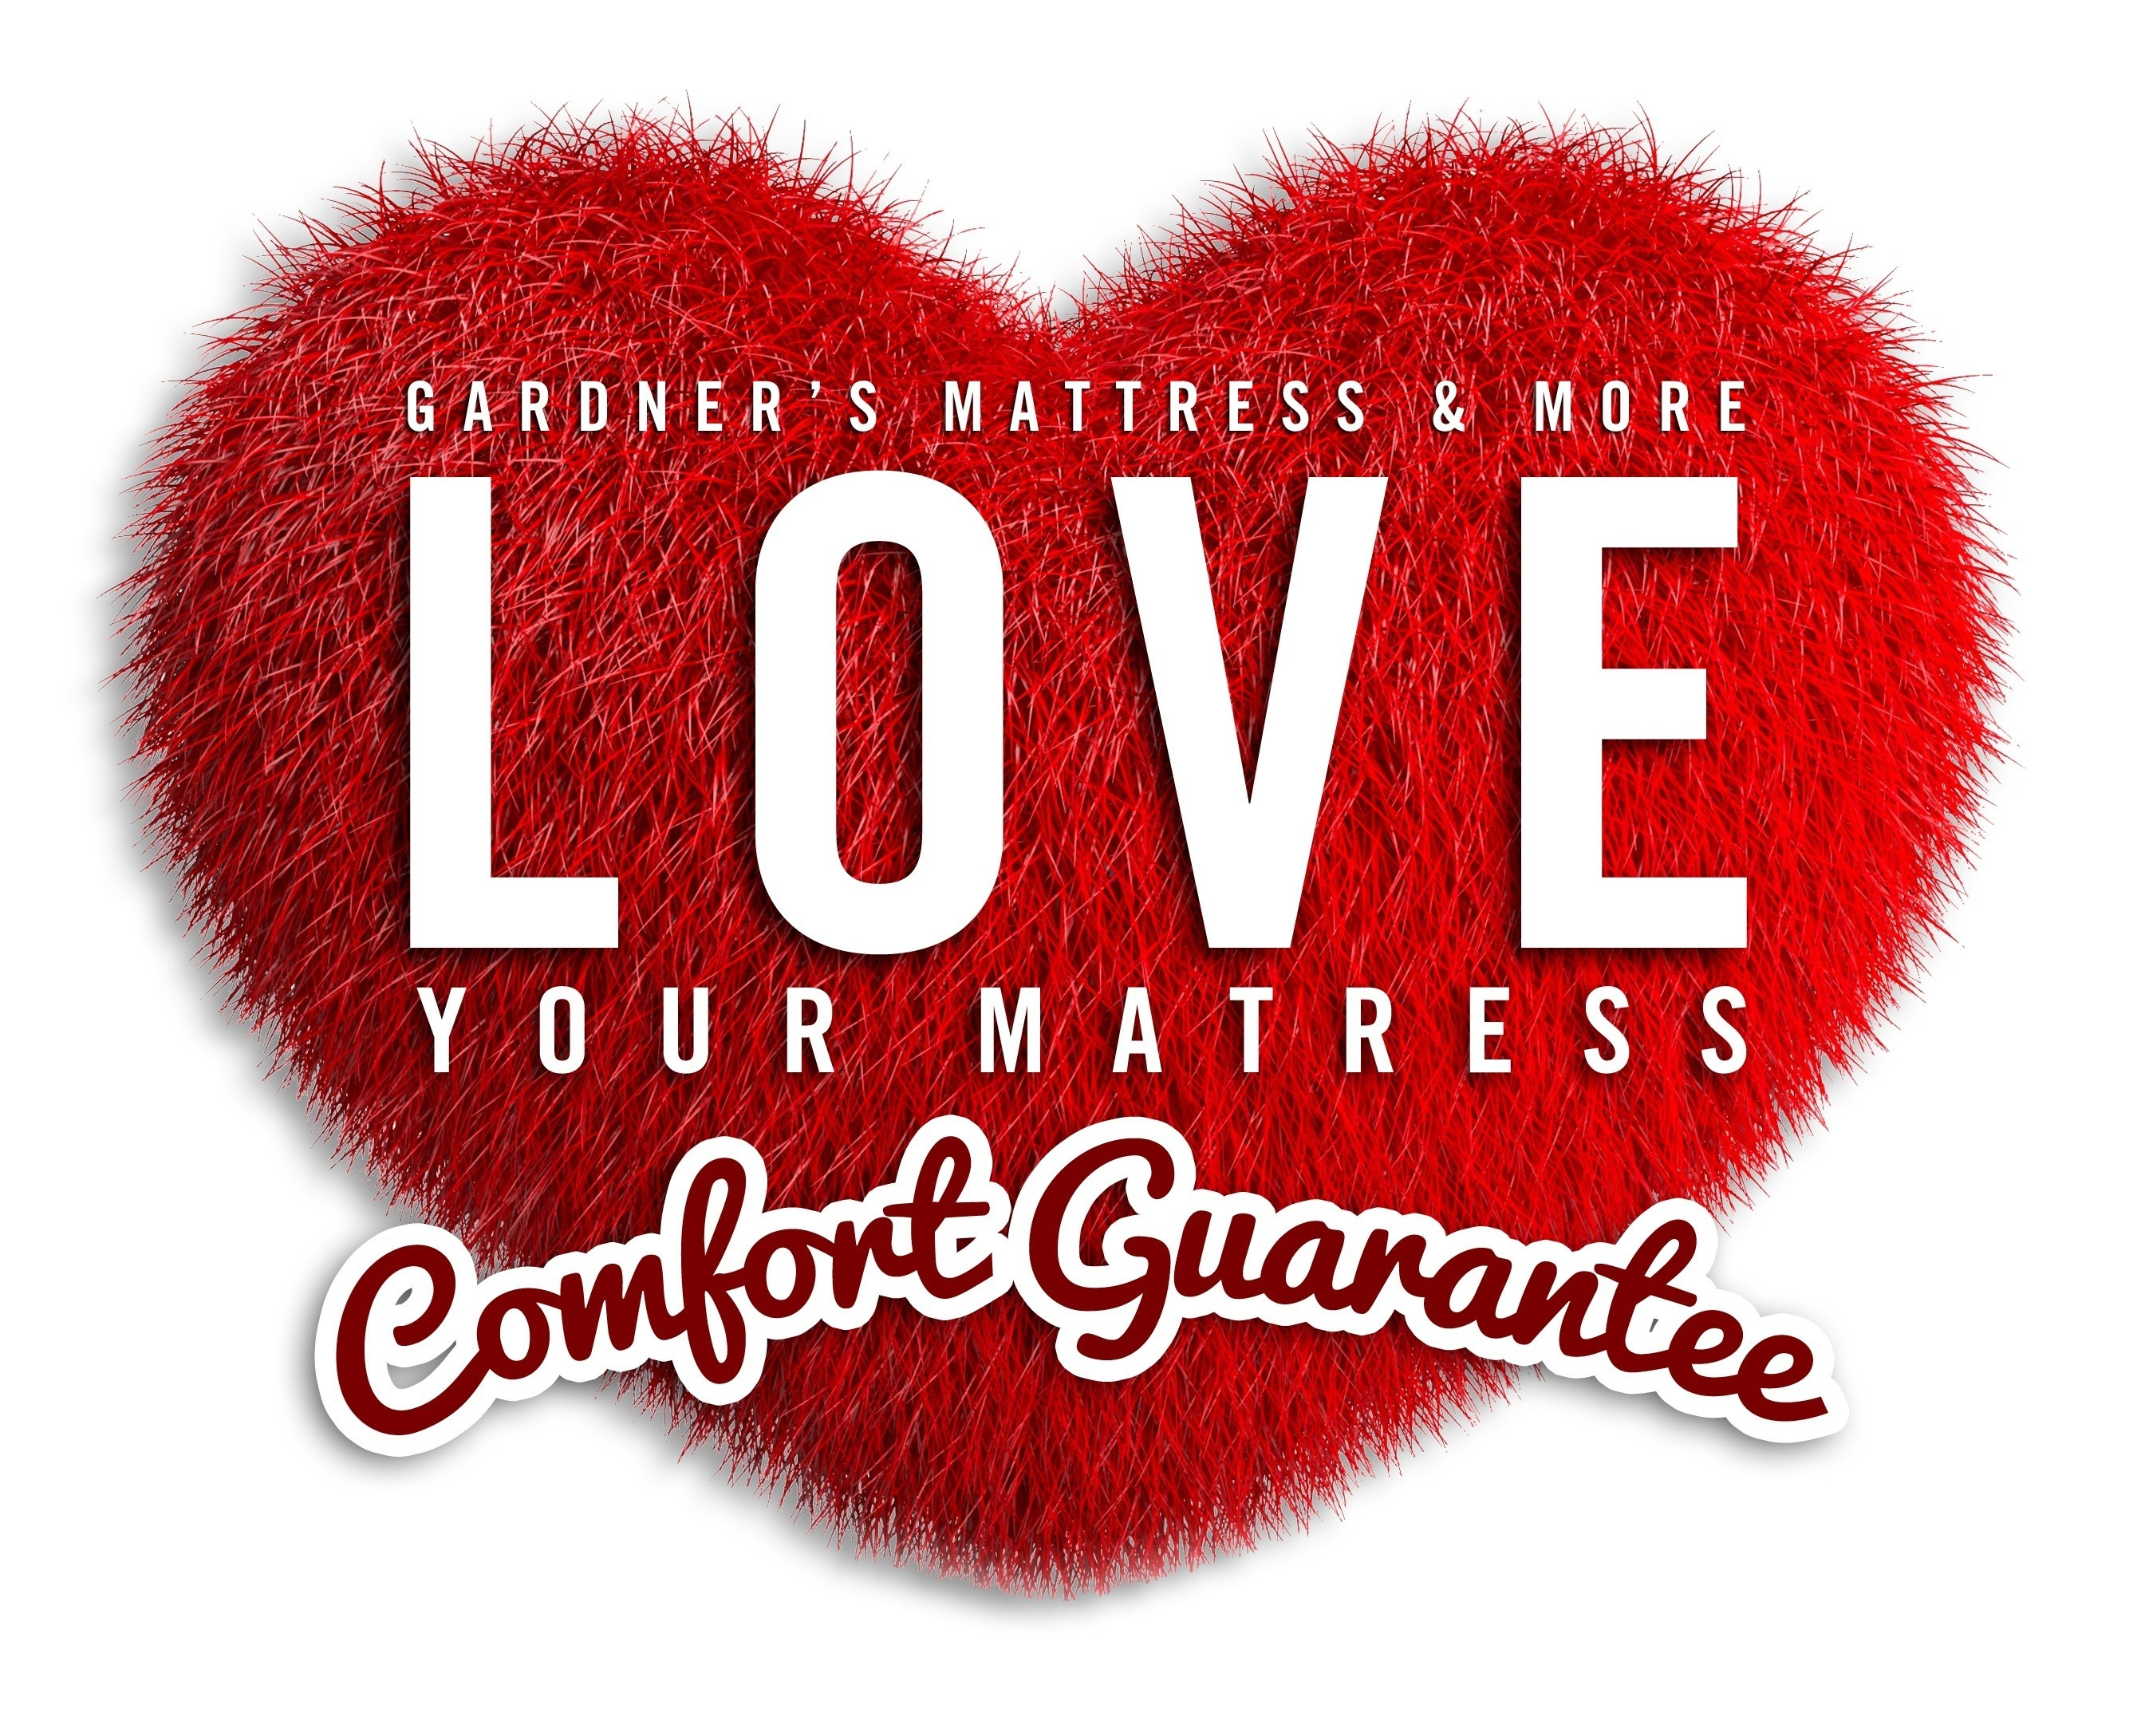 Gardner's Love Your Mattress Comfort Guarantee